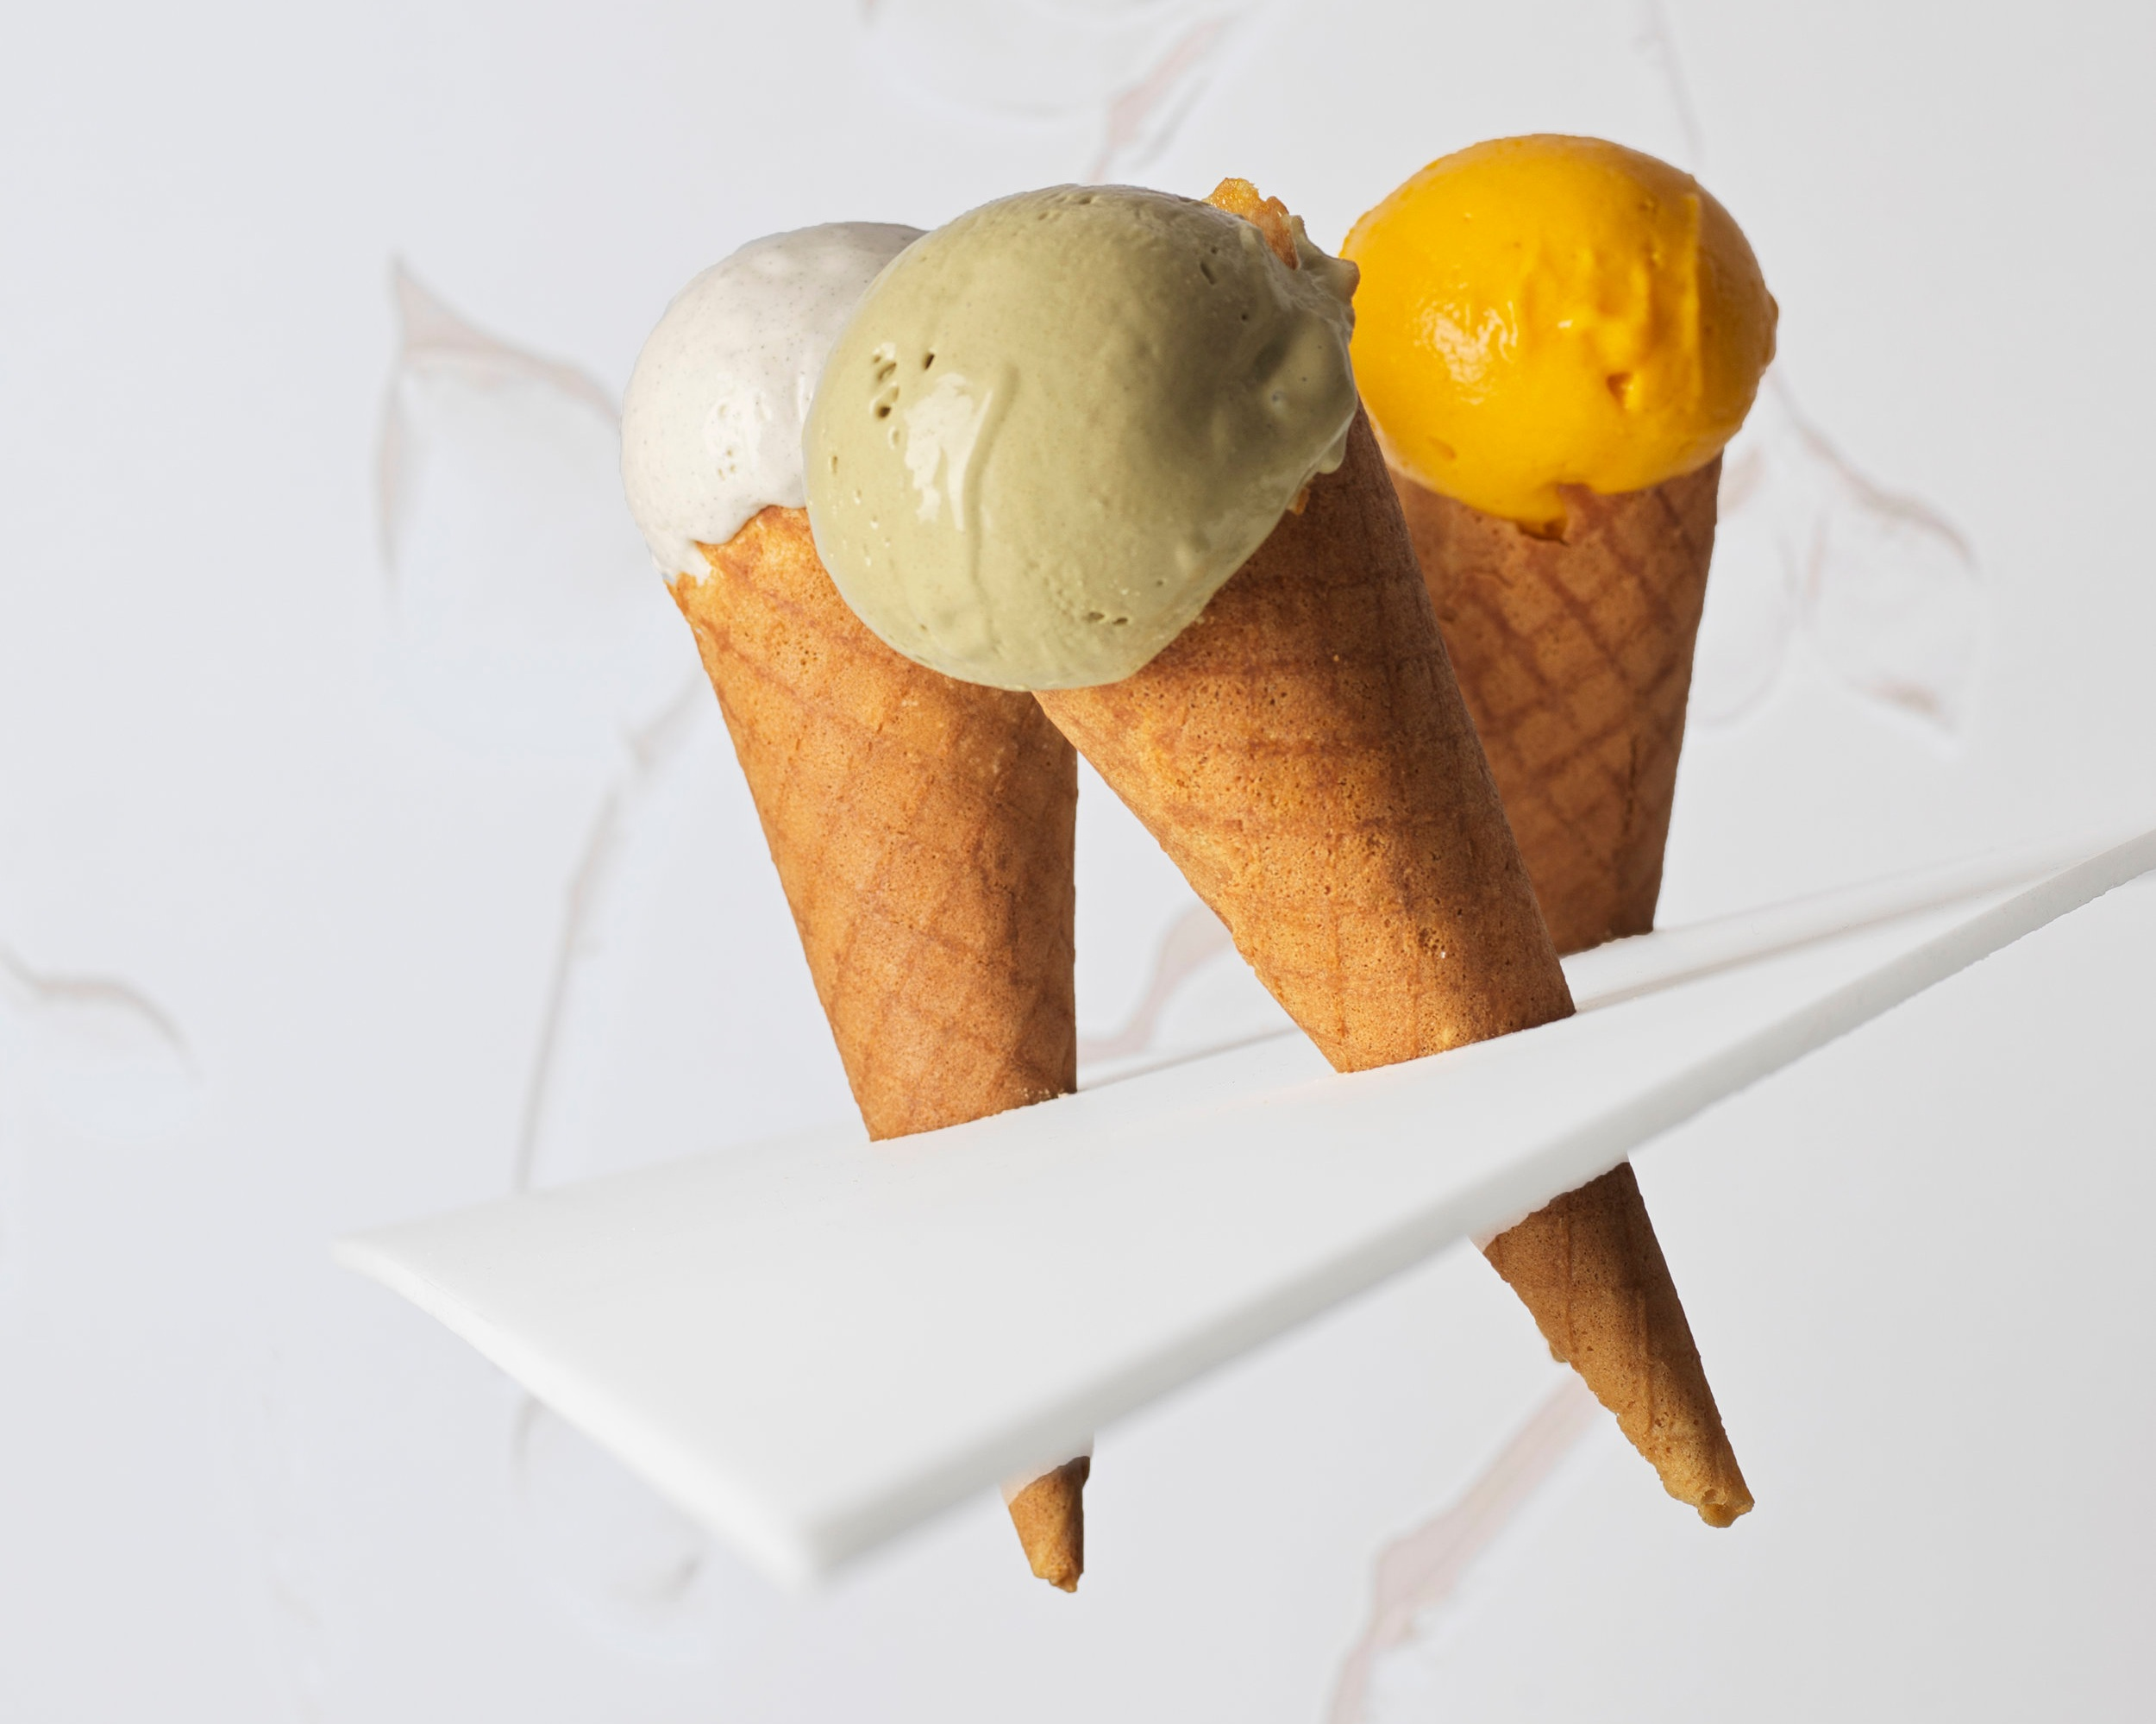 Jacques Genin    133 Rue de Turenne 75003 Paris - 01 45 77 29 01  From Tuesday to Saturday: 10h-19h (19h30 on Saturdays)  A flavor 6€ | Two Flavors 8€